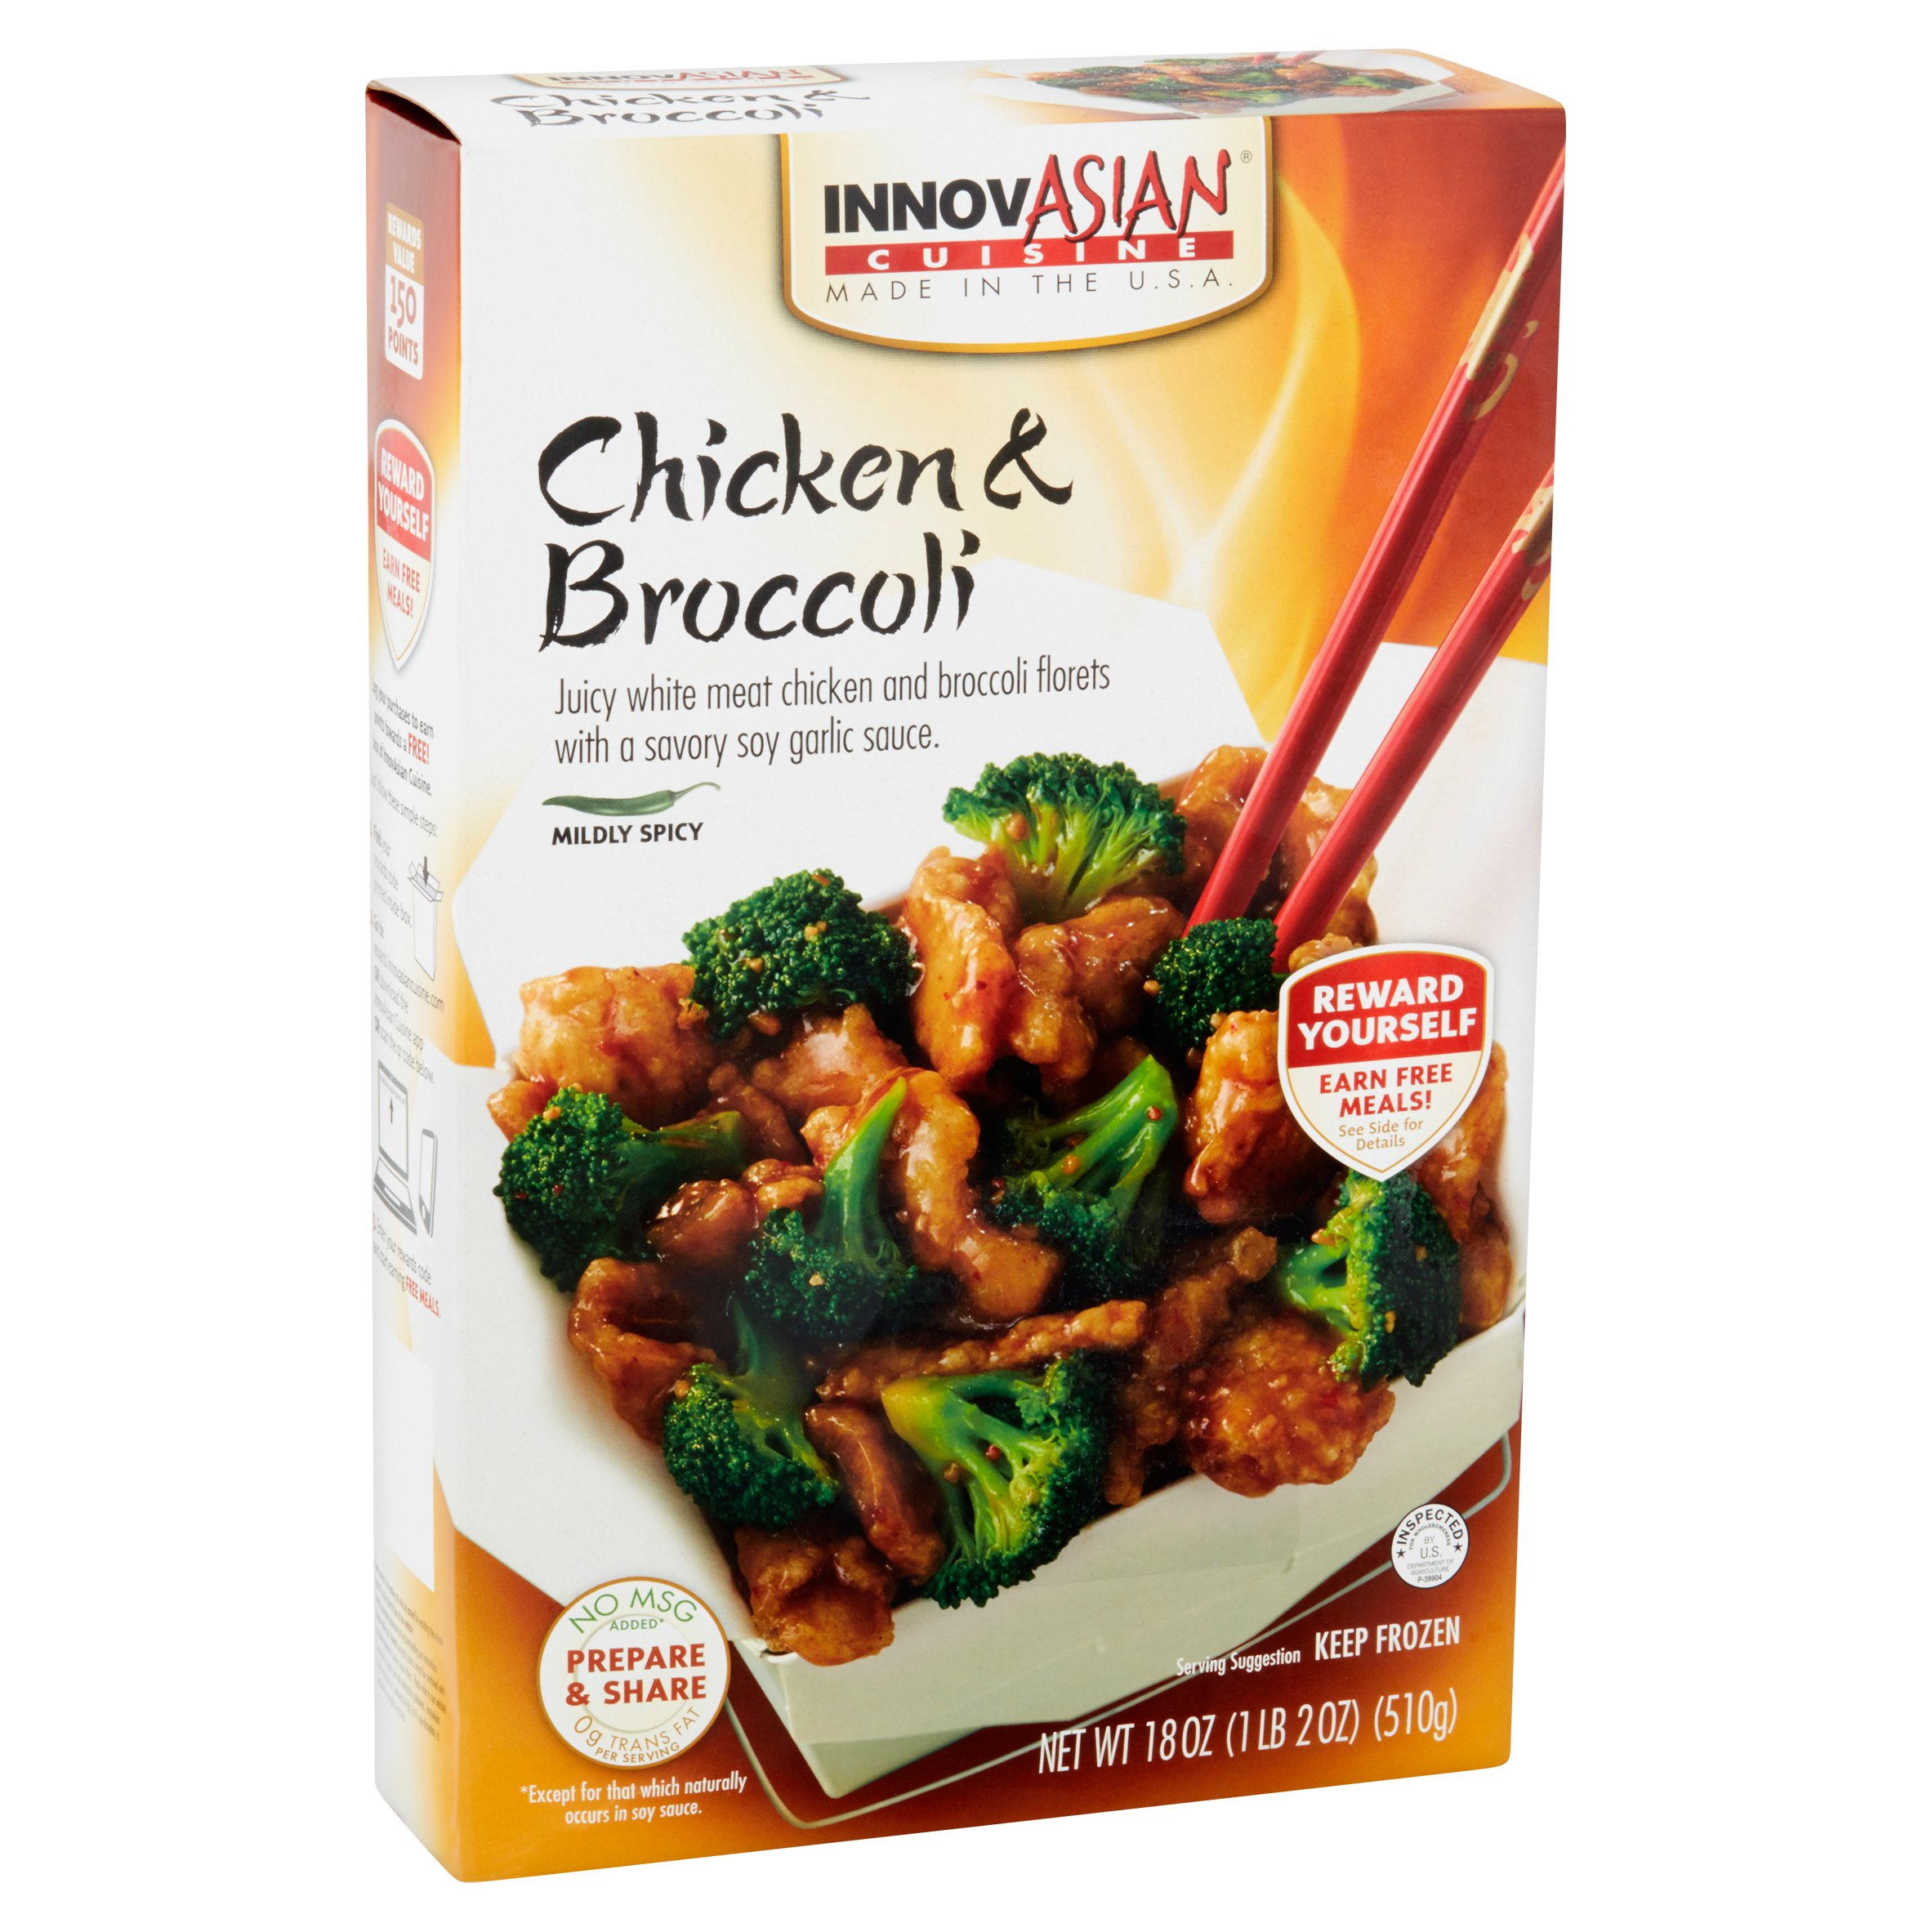 innovasian cuisine chicken & broccoli family style entree kit, 18